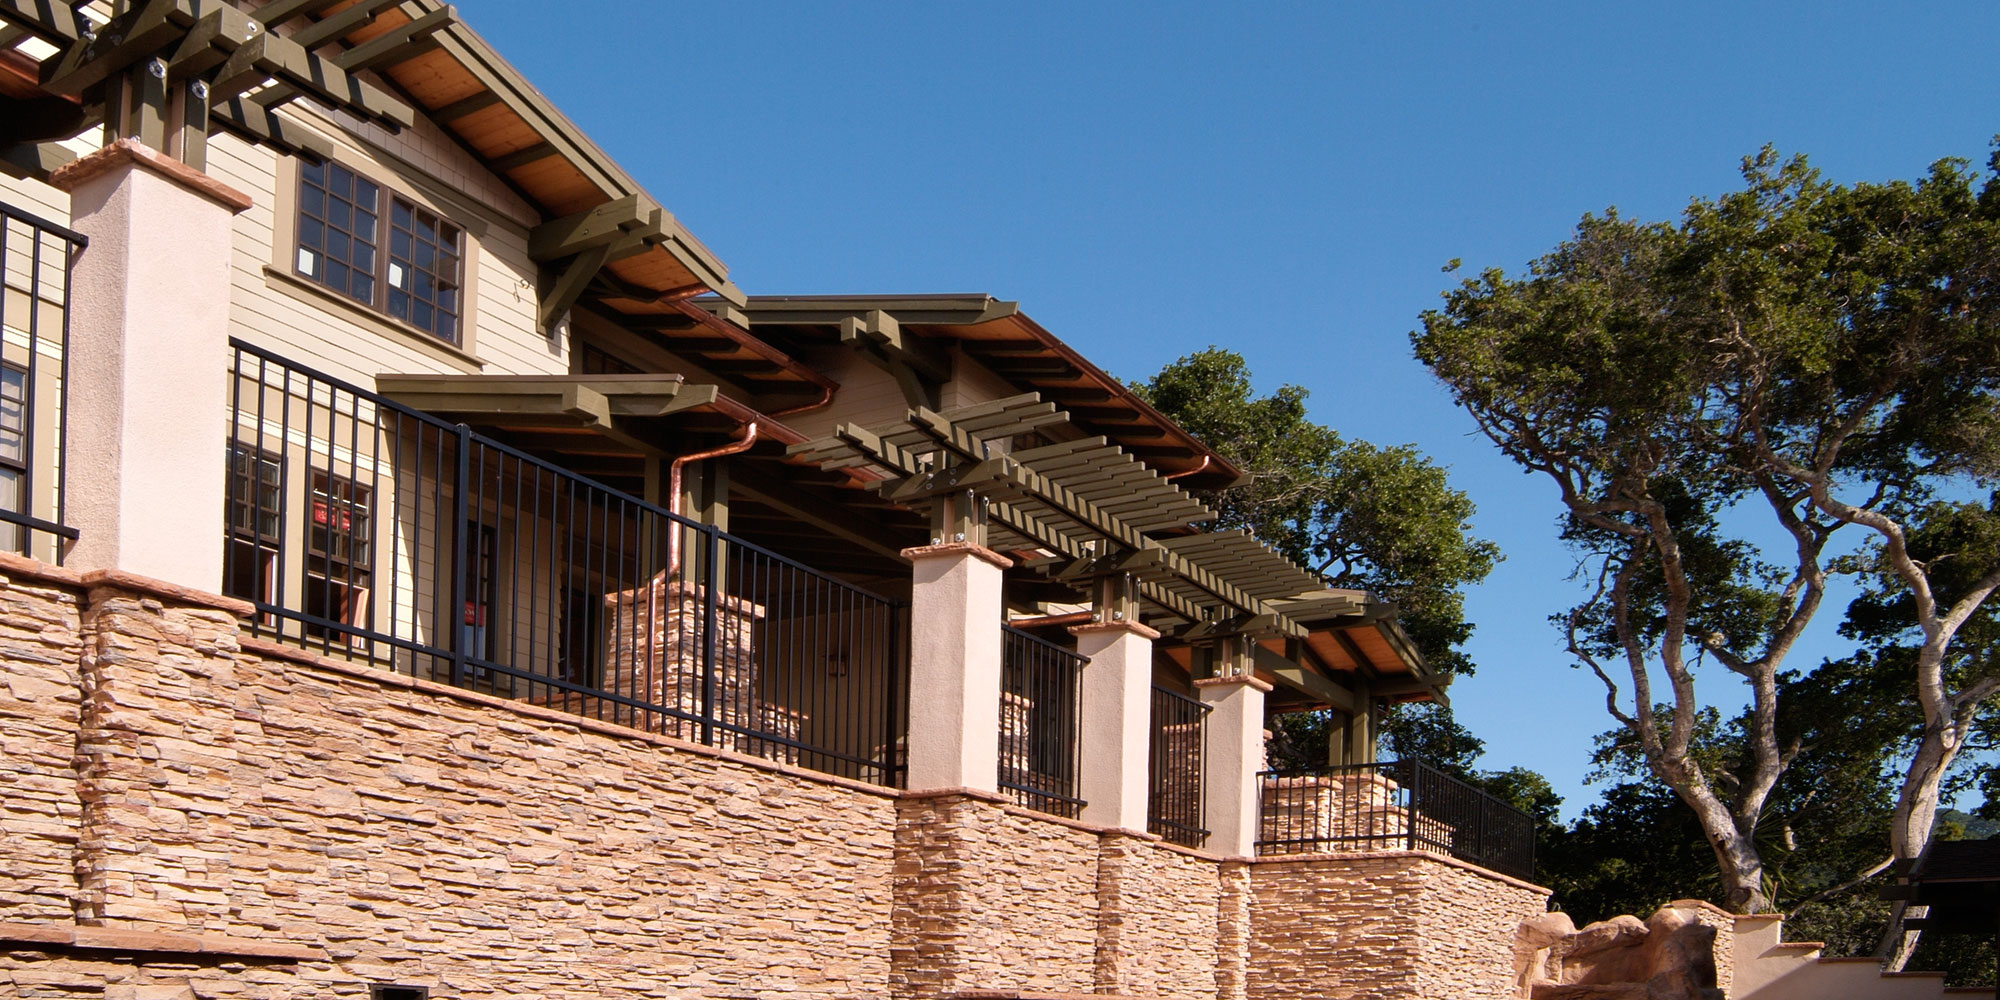 Multi Residential Condo Construction - Central Coast Contractor - JW Design and Construction